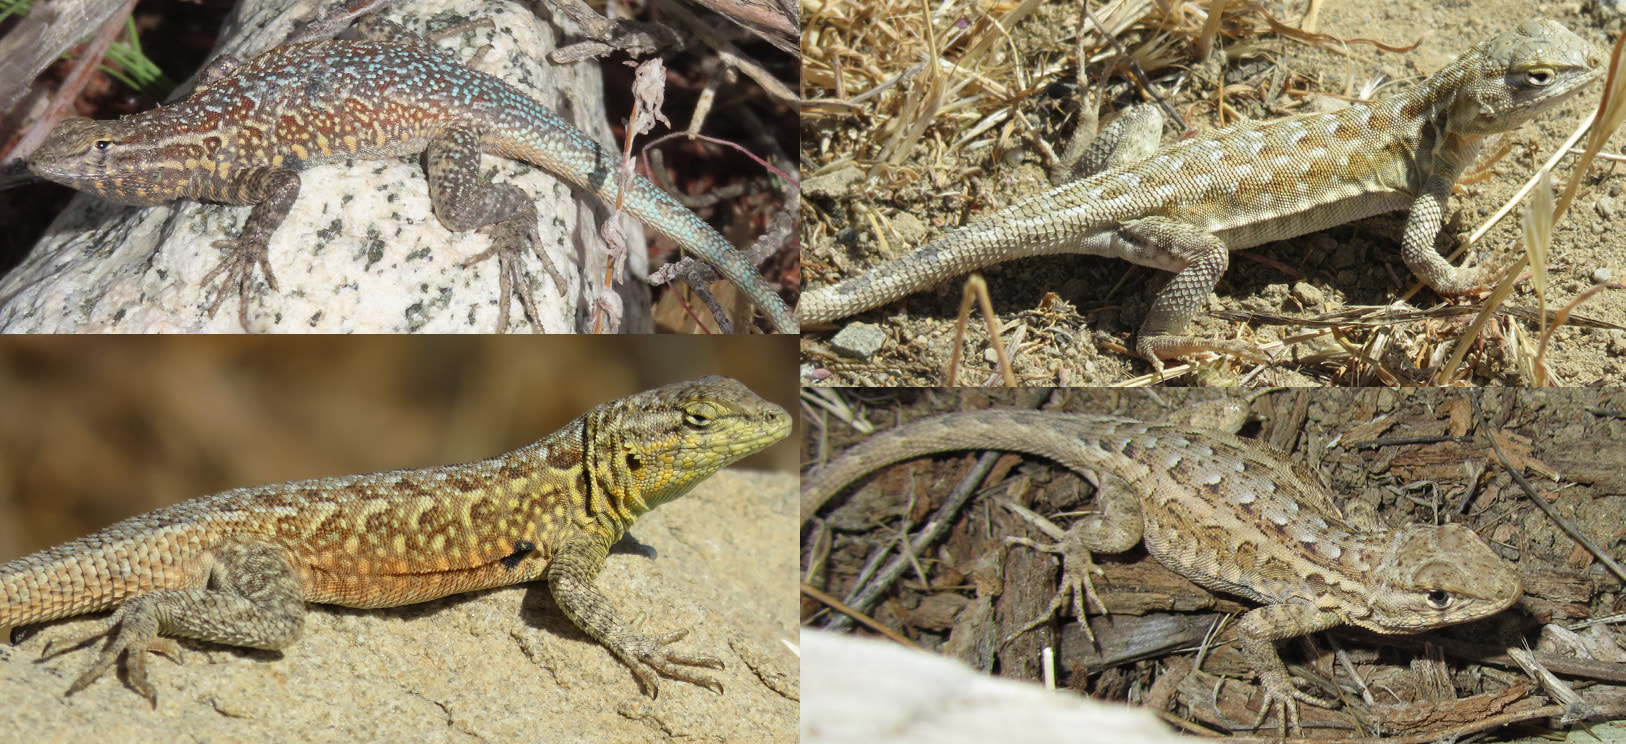 Common Side-Blotched Lizards